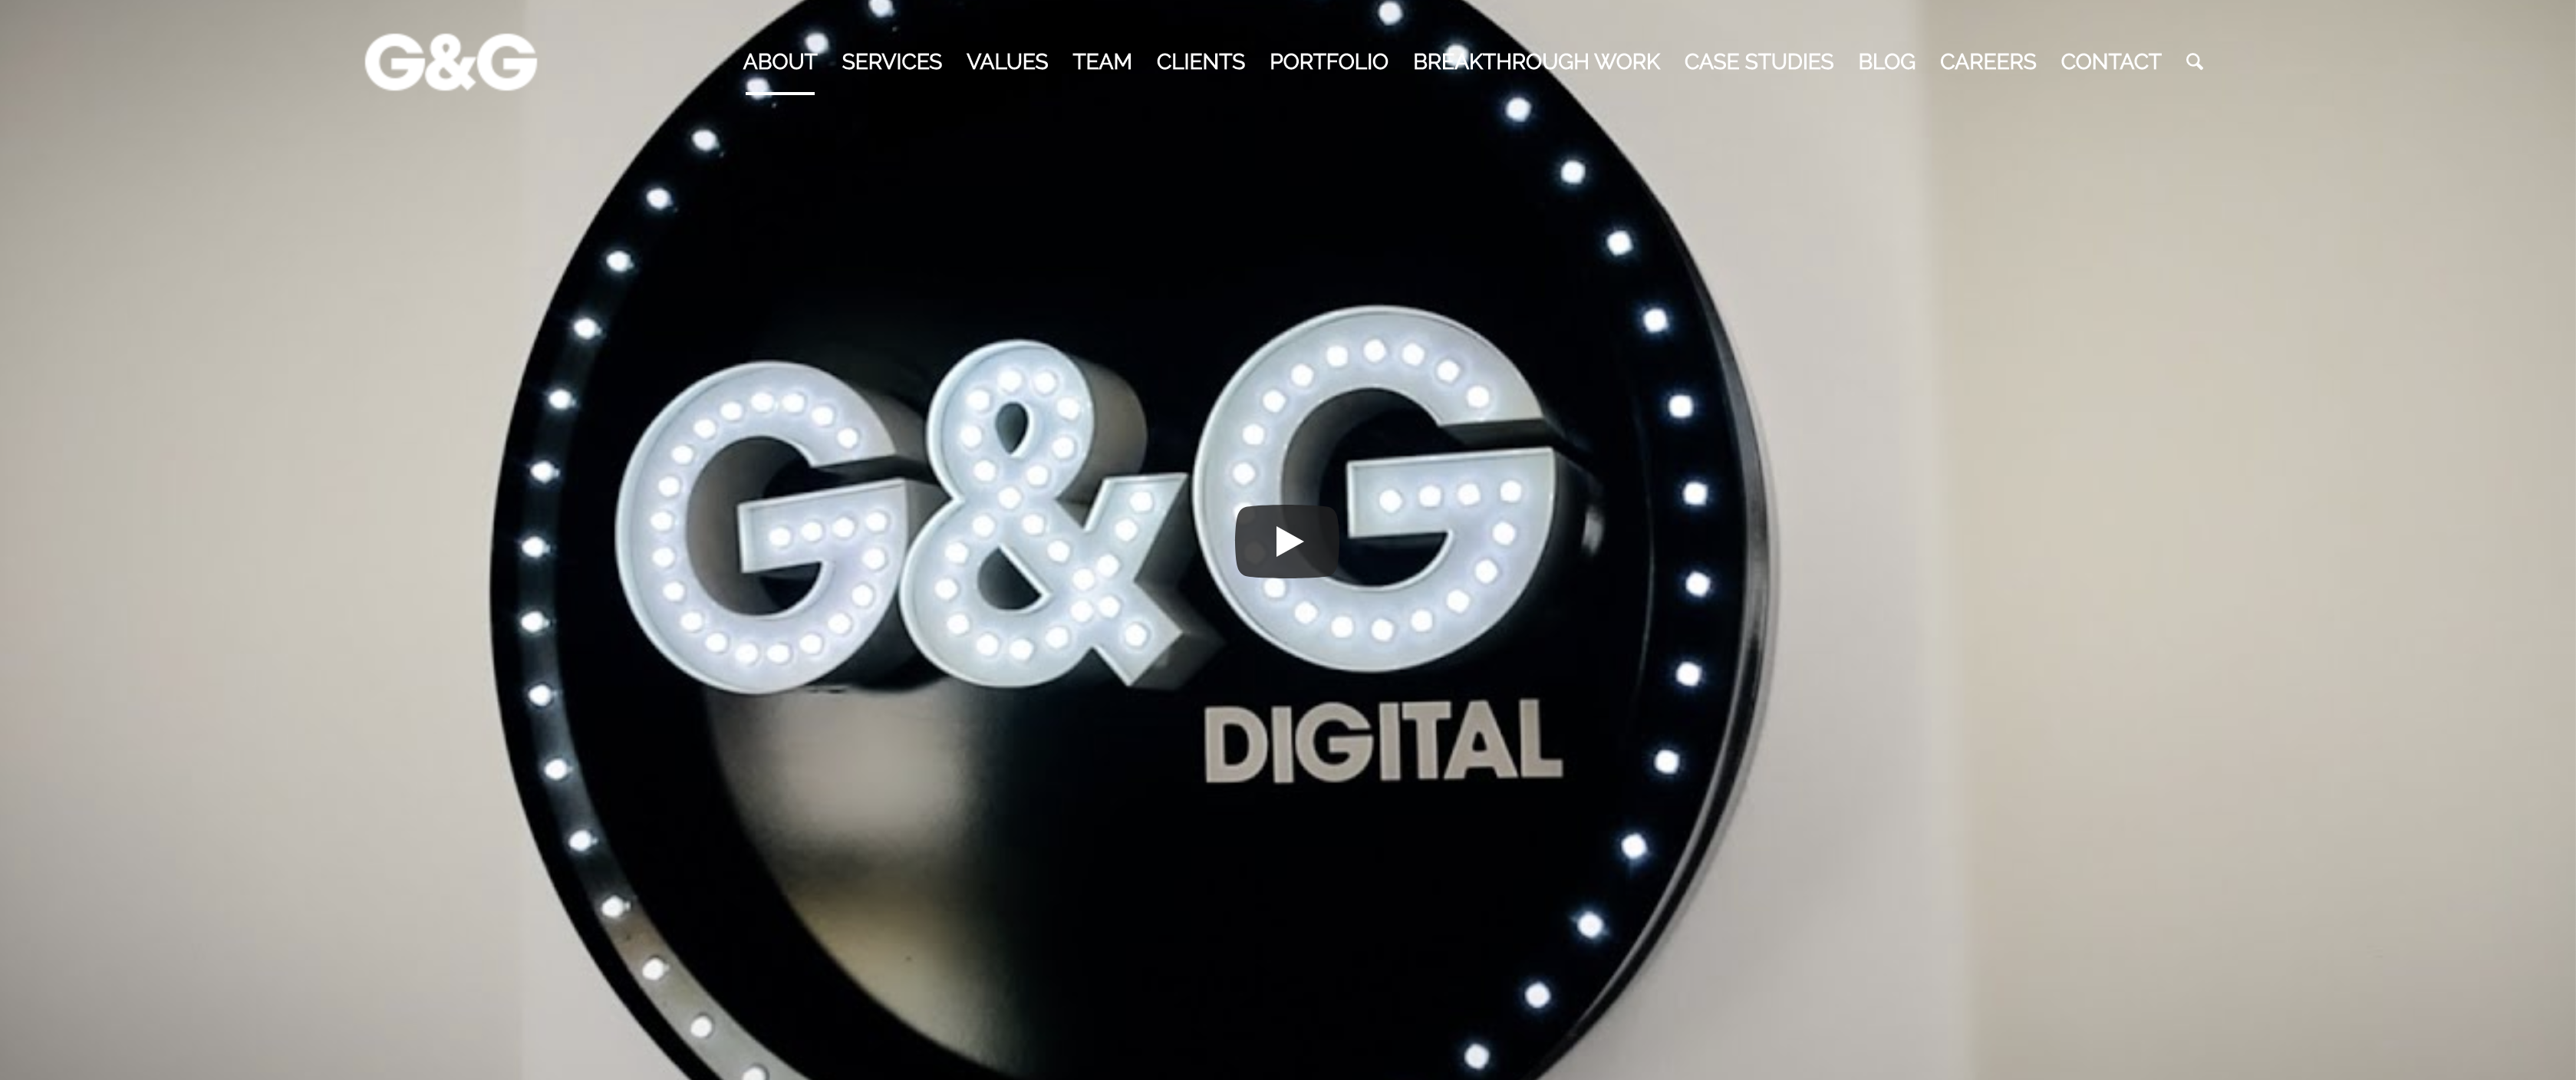 G&G Digital